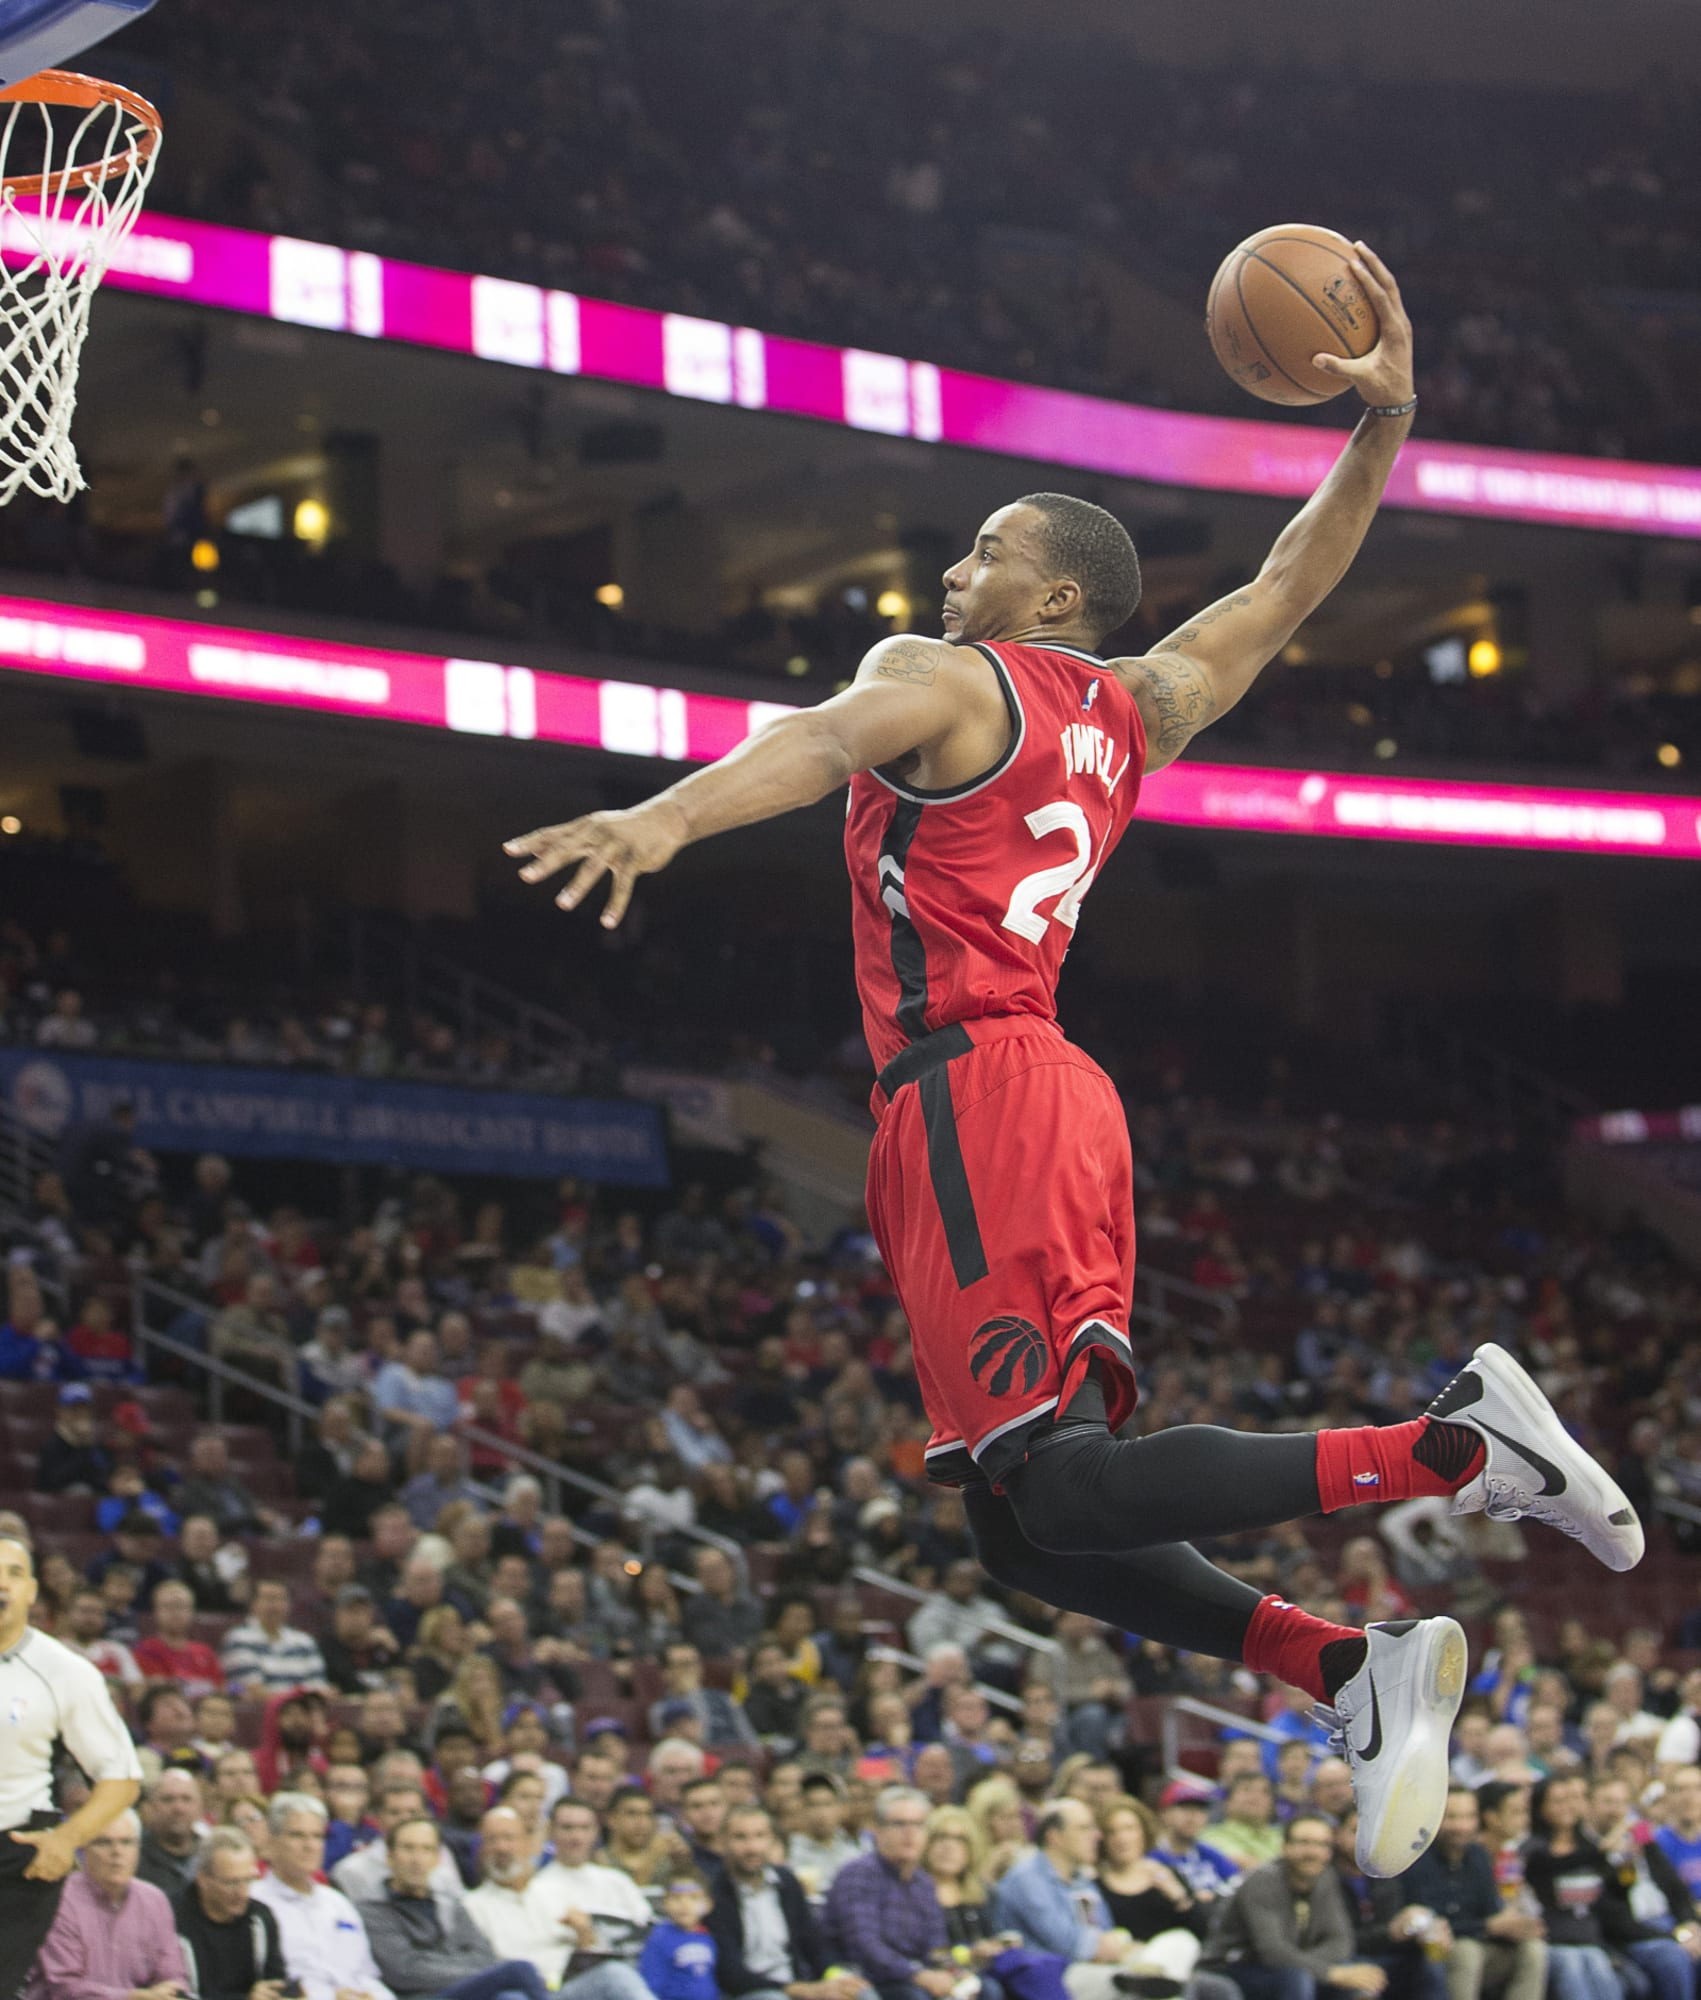 Toronto Raptors: Norman Powell's Top 5 moments as a Raptor